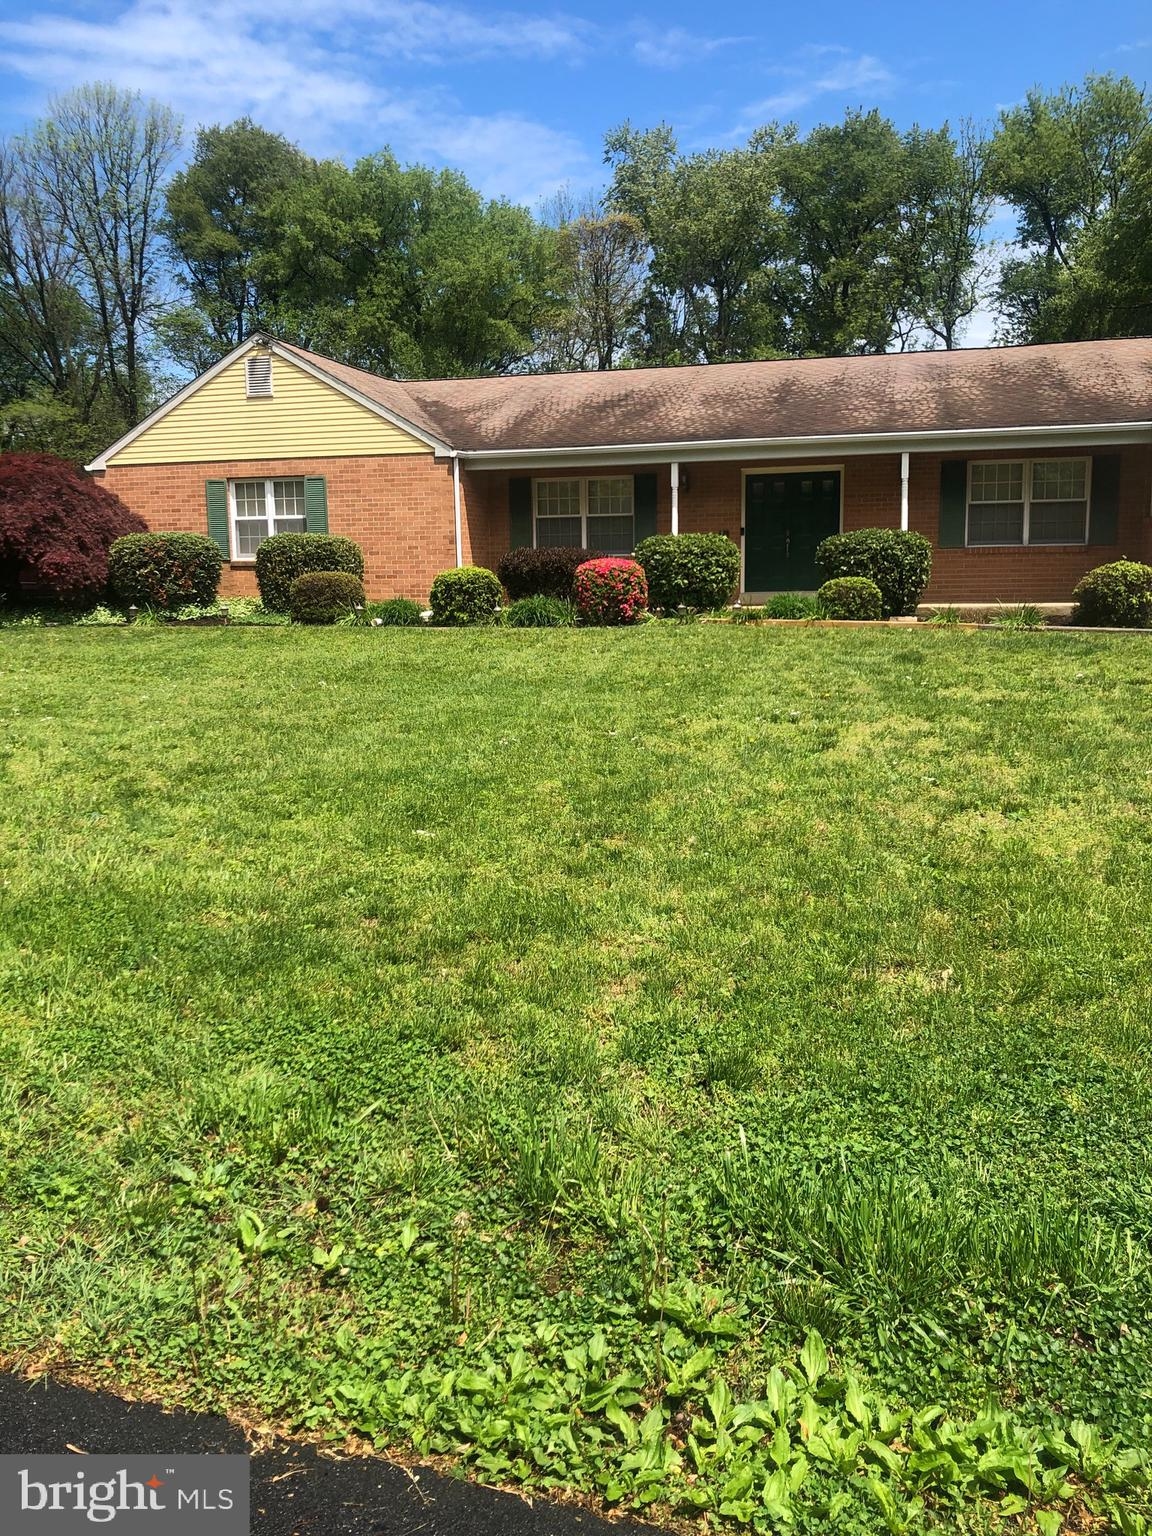 Check out this handsome One Story brick ranch home in the Award winning Unionville-Chadds Ford School District! This Beautiful Single home is situated on a flat and level 1.3 acre private lot in the Desirable Dilworthtown Oaks Estates.  The lot has beautifully manicured lawn, mature trees and flowering bushes throughout, with tons of room to run and privacy.  The land beyond the boundary line to the rear is open and is not to be developed. Enter into the grand foyer thru the large double door entrance which leads to the sunny Formal living room.  To the left of the front door is the Formal Dining Room which leads to a large spacious eat-in kitchen with updated countertops. Coming from the large two car garage there is the laundry room/mud room/ pantry and a powder room.  Access from Terrace in the back directly to the kitchen and the garage.  On the right side of the living room is a Grand Oversized Master Bedroom with Master Bath and additional sink, mirror and cabinets for a great makeup area outside of the toilet and shower. In addition there are three very nice sized bedrooms, and  hall bath, all separated from the rest of the house by a door in the hallway.  Beyond the living room and kitchen is a nice, cozy and well lit family room that leads to the gorgeous terrace out back, for summer BBQ's and family gatherings.  This home has been lovingly cared for and maintained.  It does require some updates in the kitchen and bathrooms but its ready for any happy buyer looking to make their own choices in upgrades.  Plenty of additional storage space, French Drain system installed.  Newer Heat Pump and Central Air.  Easy access to all major routes, shopping, restaurants, Historic Battlegrounds, West Chester Borough, Longwood Gardens and close to Wilmington, DE.